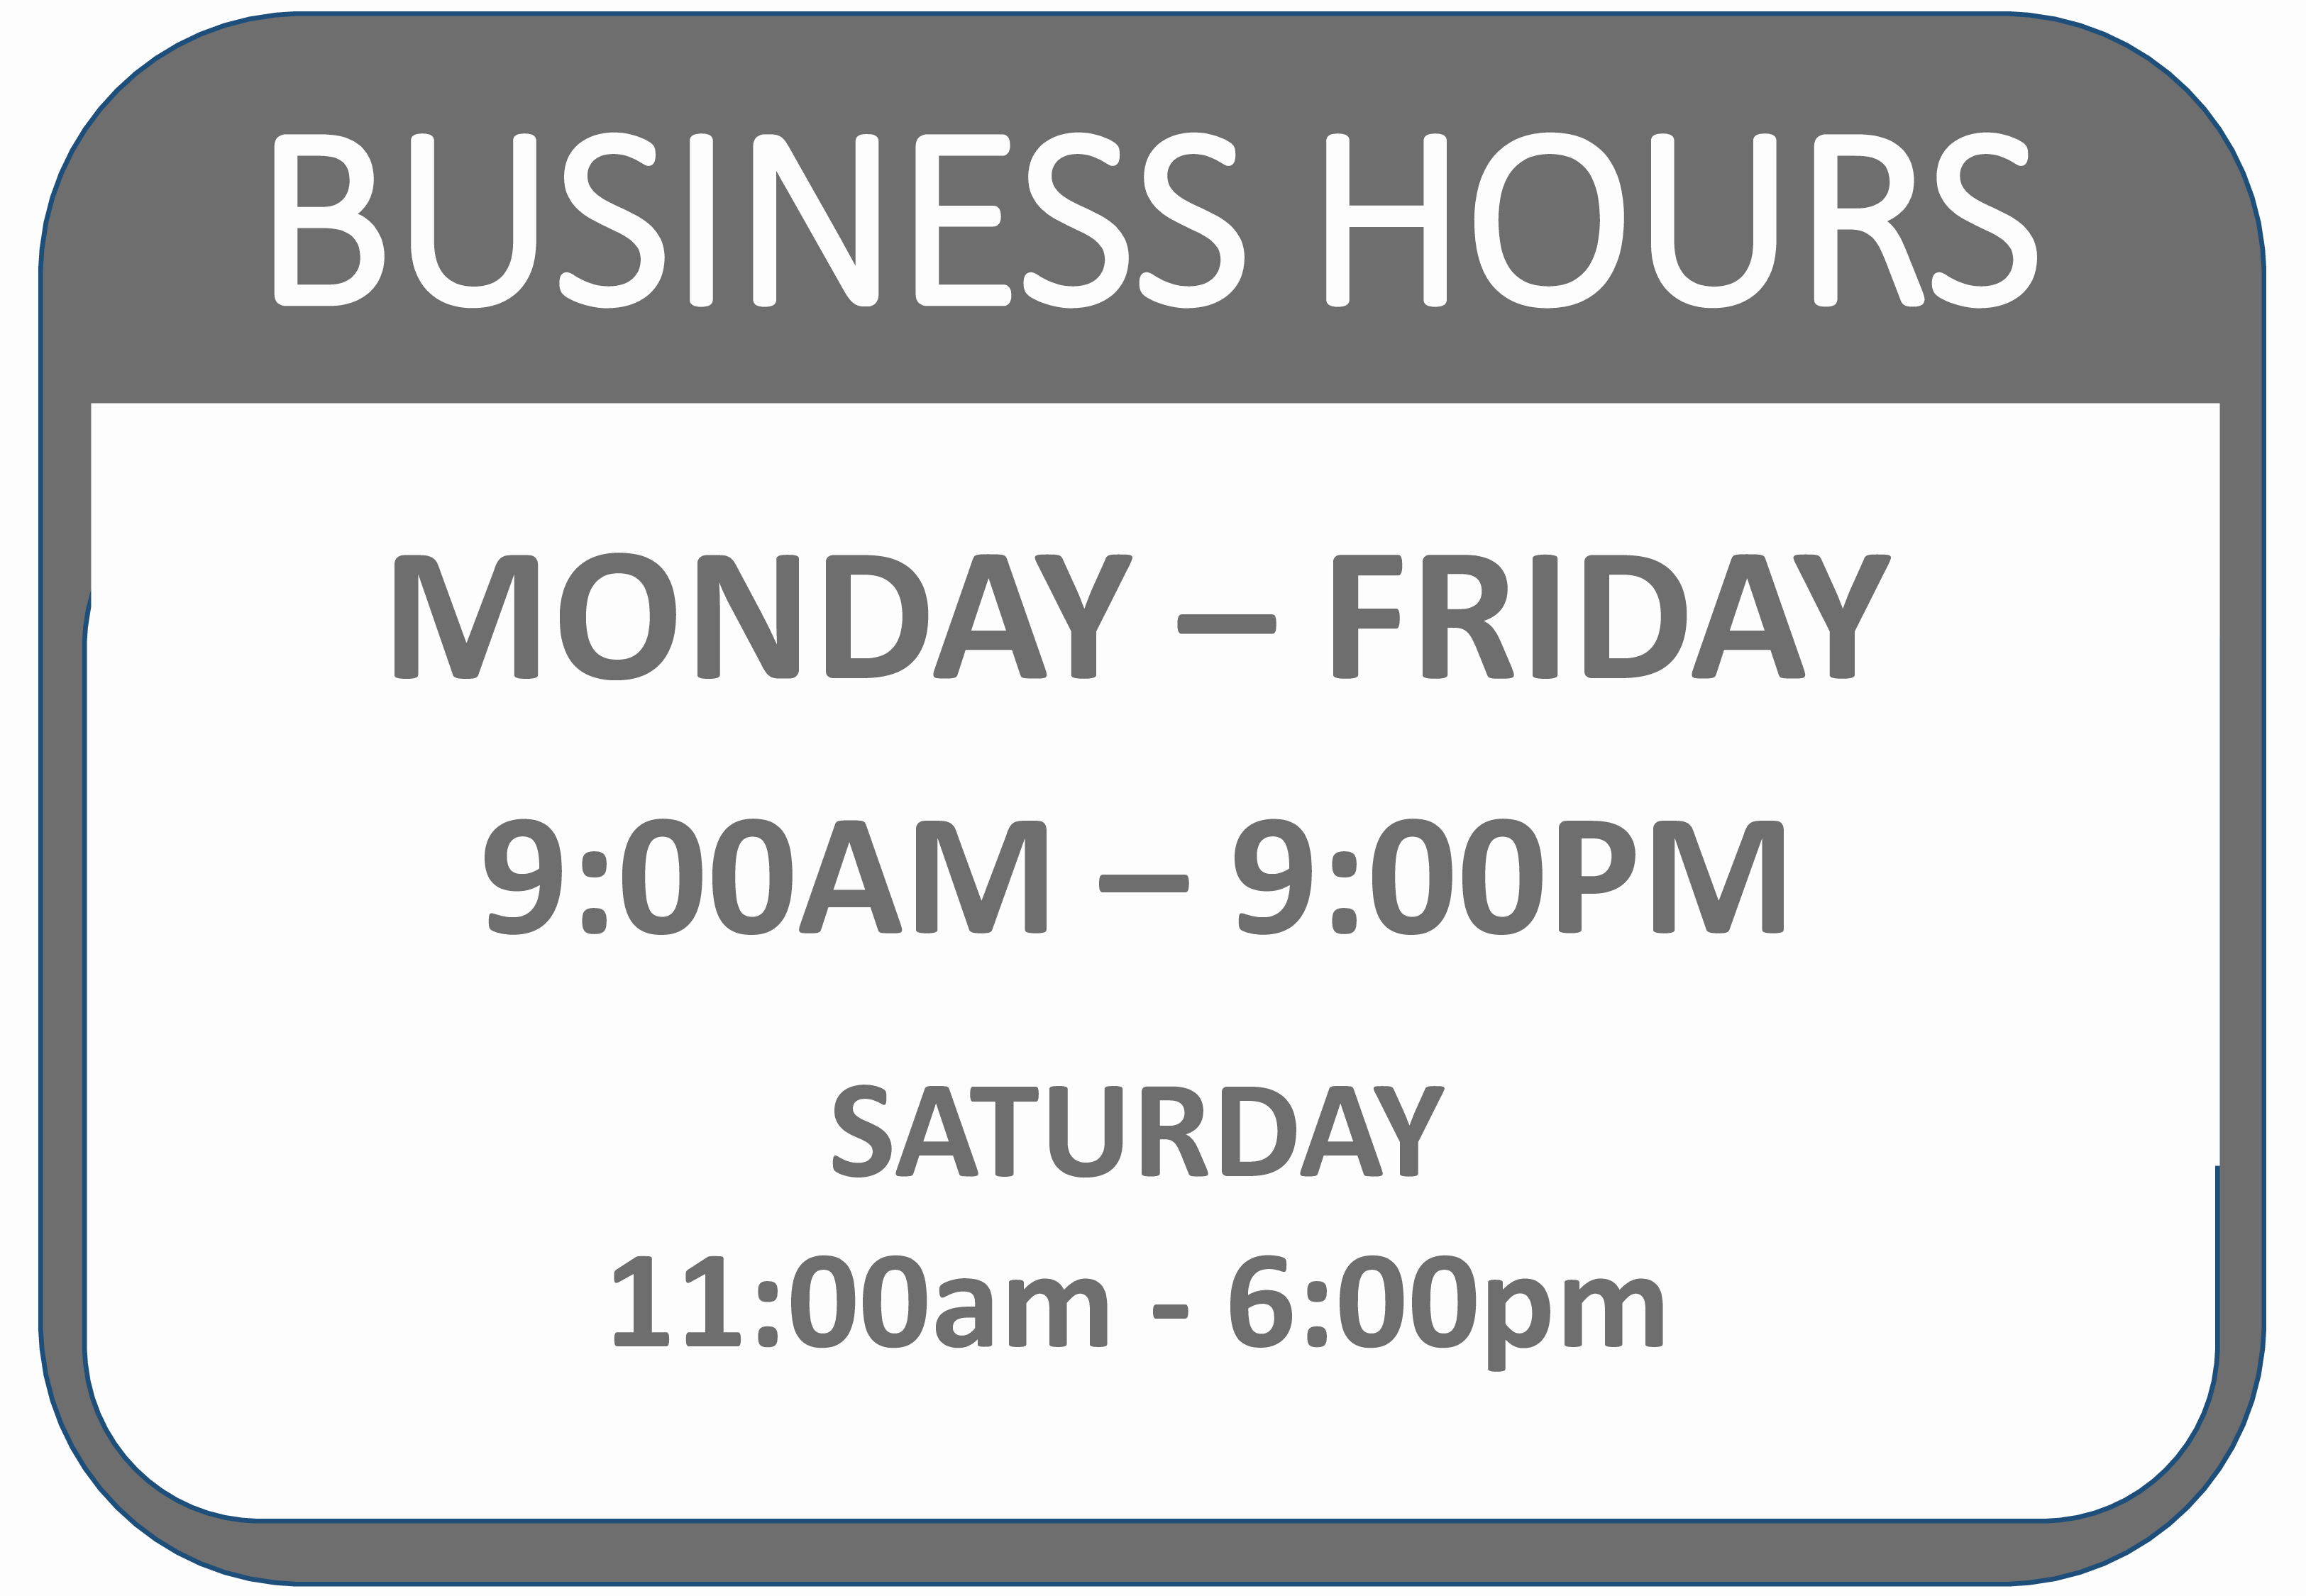 Hours Of Operation Template Word Best Of Business Hours Sign Template Business Hours Template Word